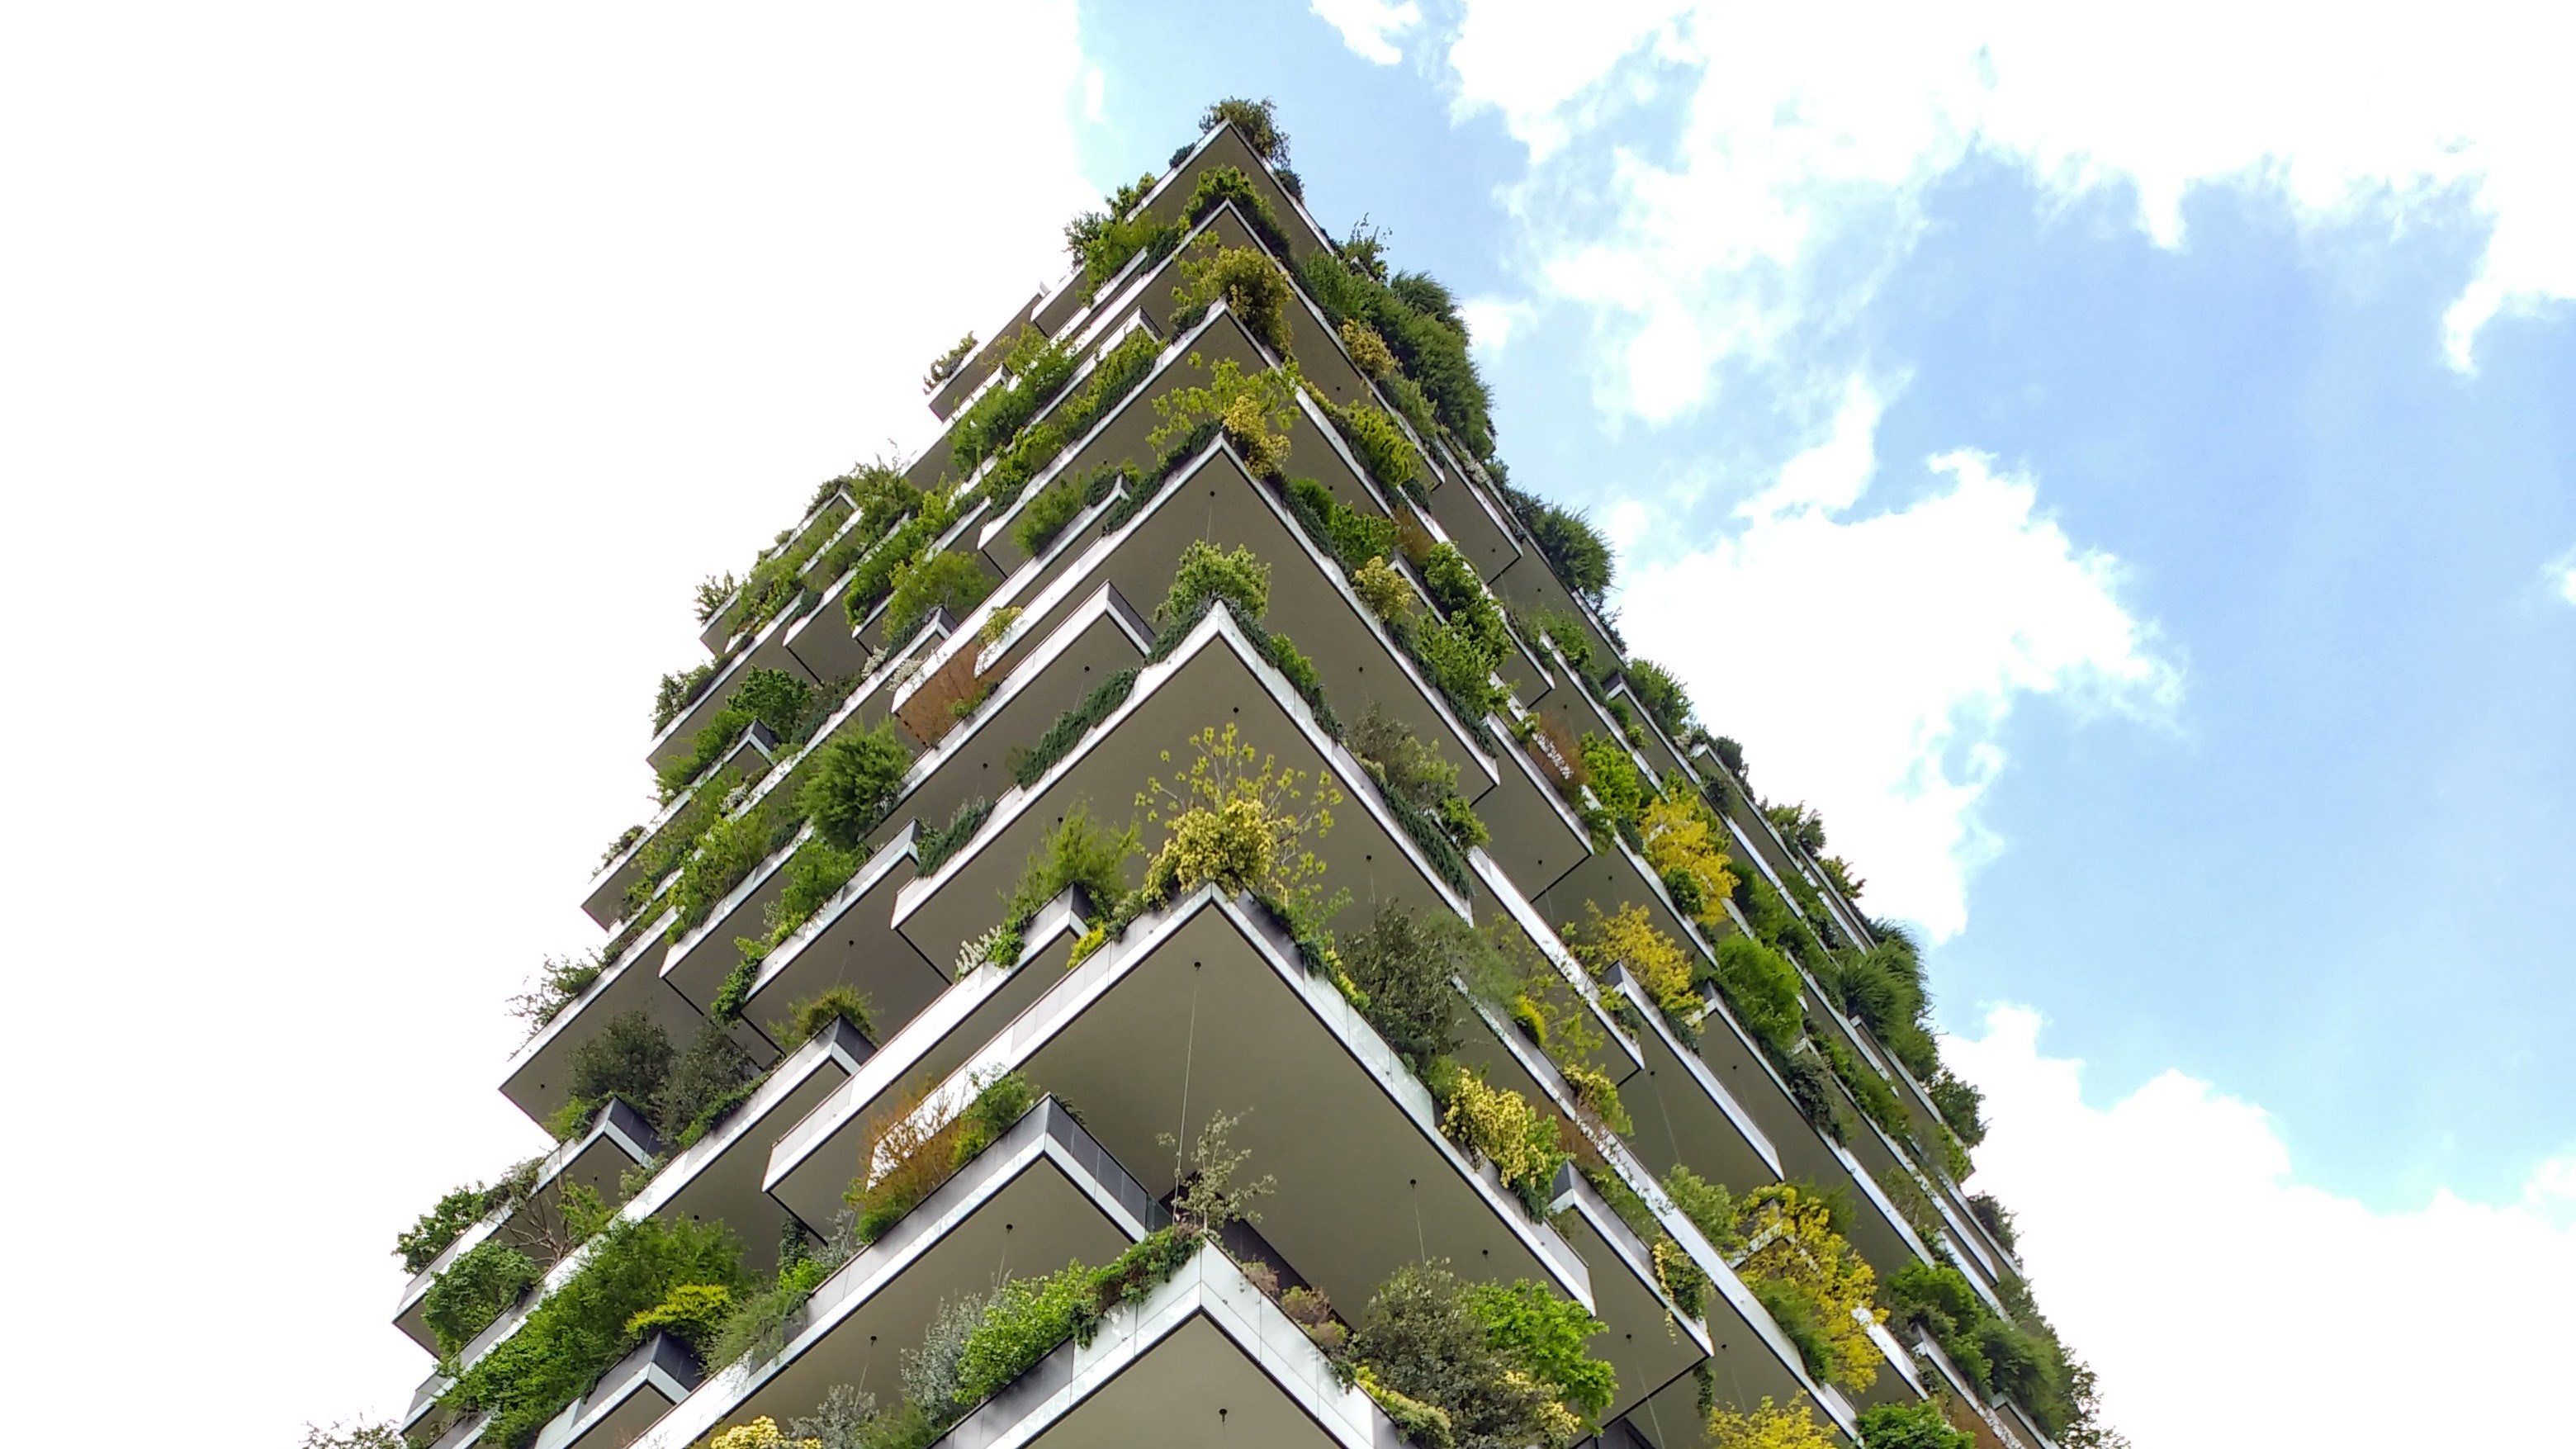 A picture of the Bosco Verticale in Milan